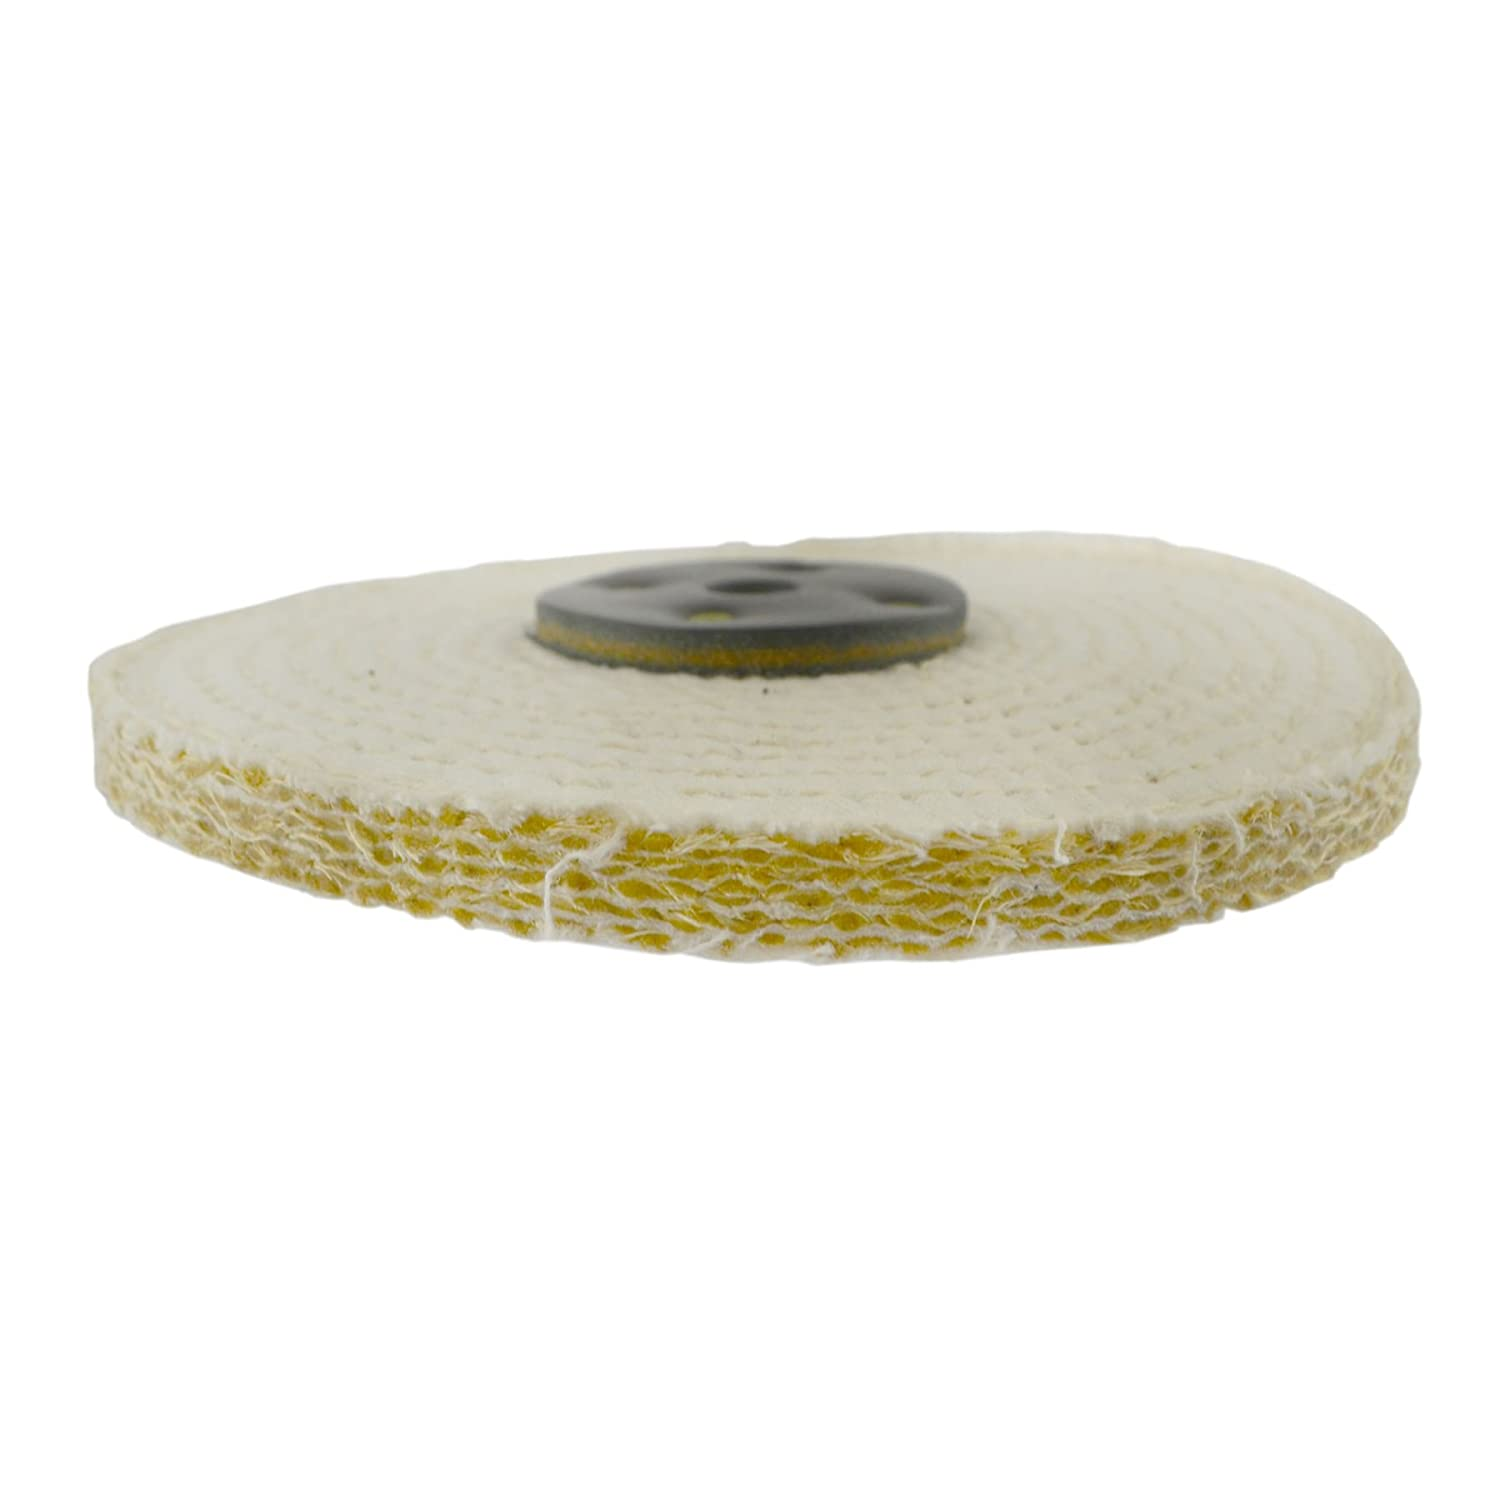 Coarse Sisal Fast Cut Buffing Polishing Mop 6 x 0.5 1 Section 1st Stage Metal